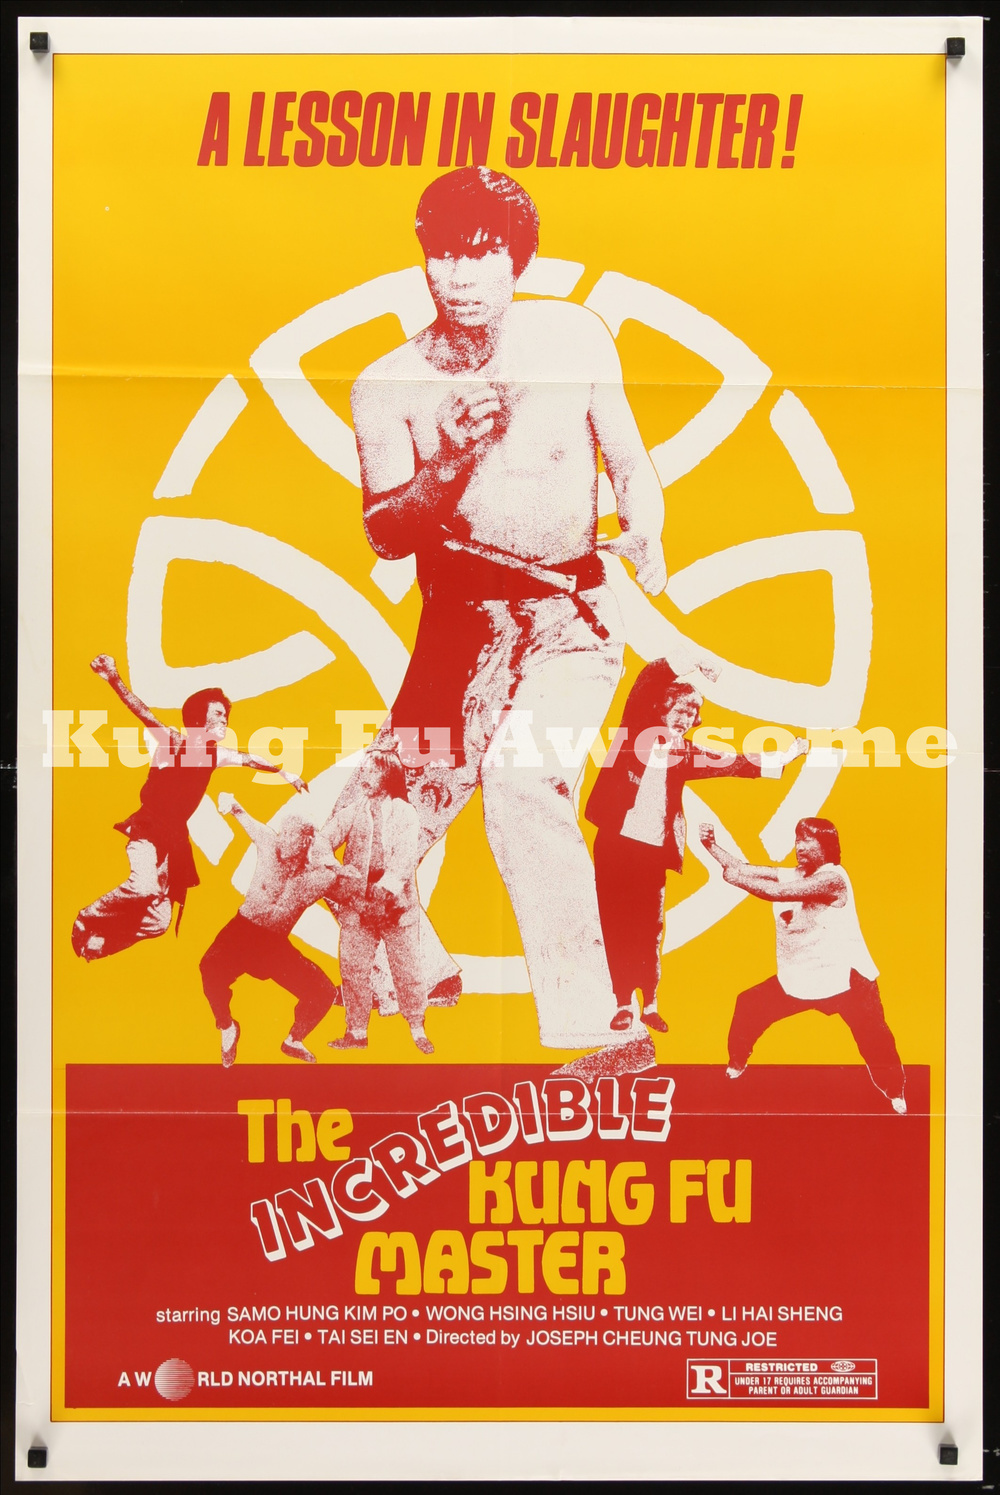 incredible_kung_fu_master_NZ03443_L.jpg